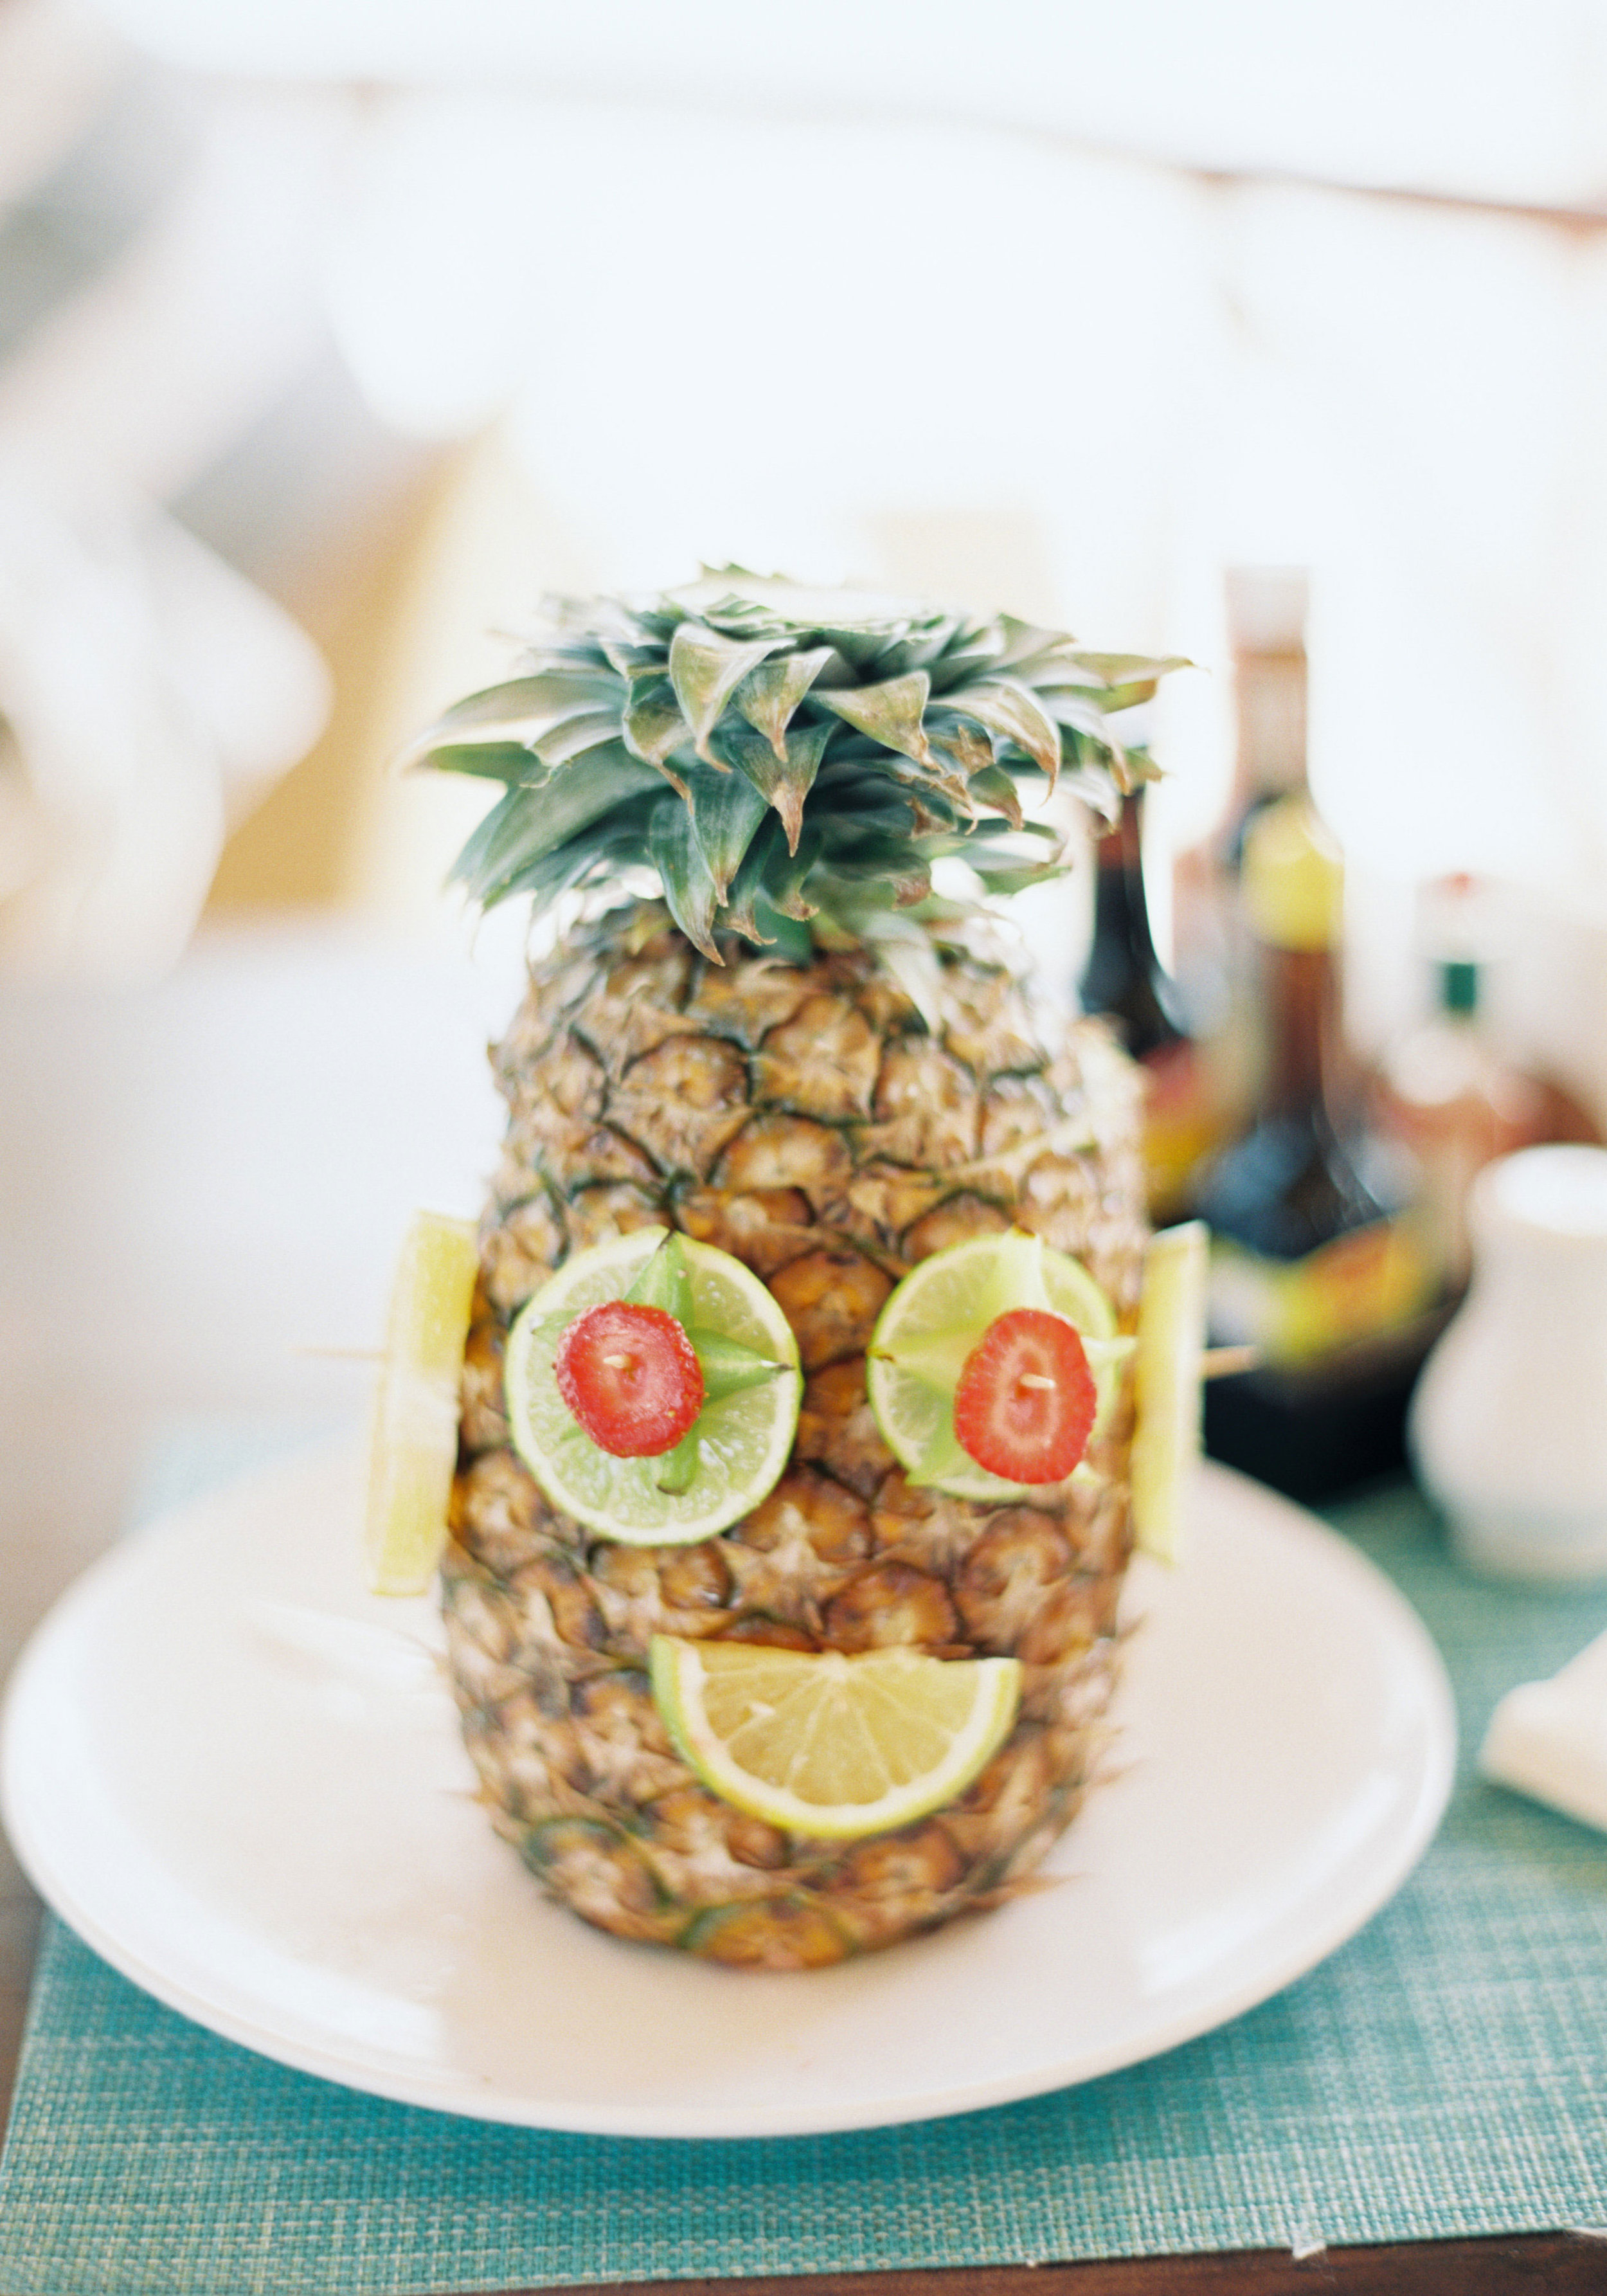 Mexico destination wedding, Pineapple drink decorating before the wedding, Wedding on the beach. www.me-and-mrjones.com